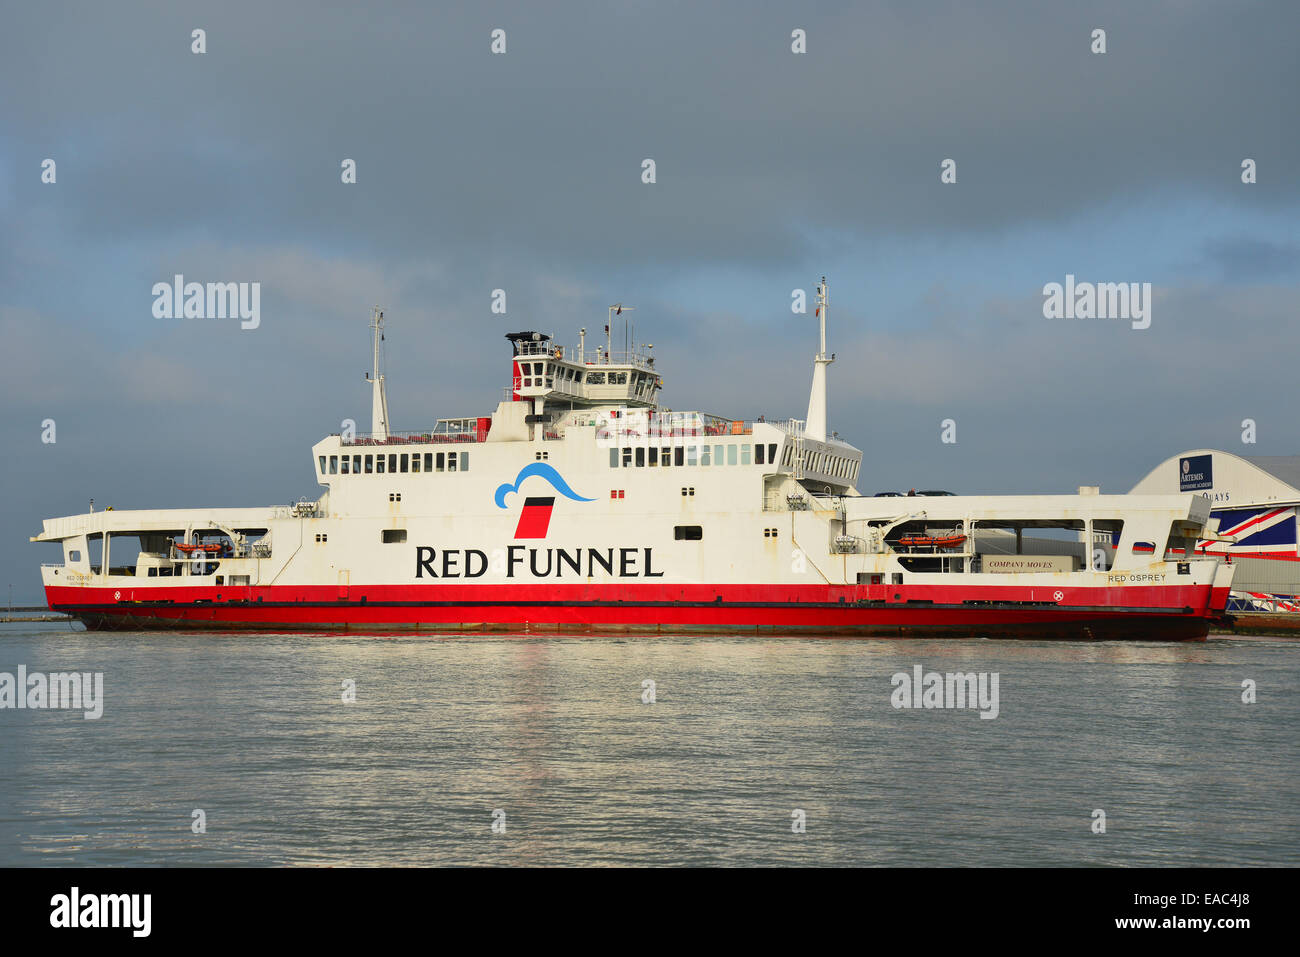 Red Funnel car ferry leaving East Cowes for Southampton, East Cowes, Isle of Wight, England, United Kingdom - Stock Image